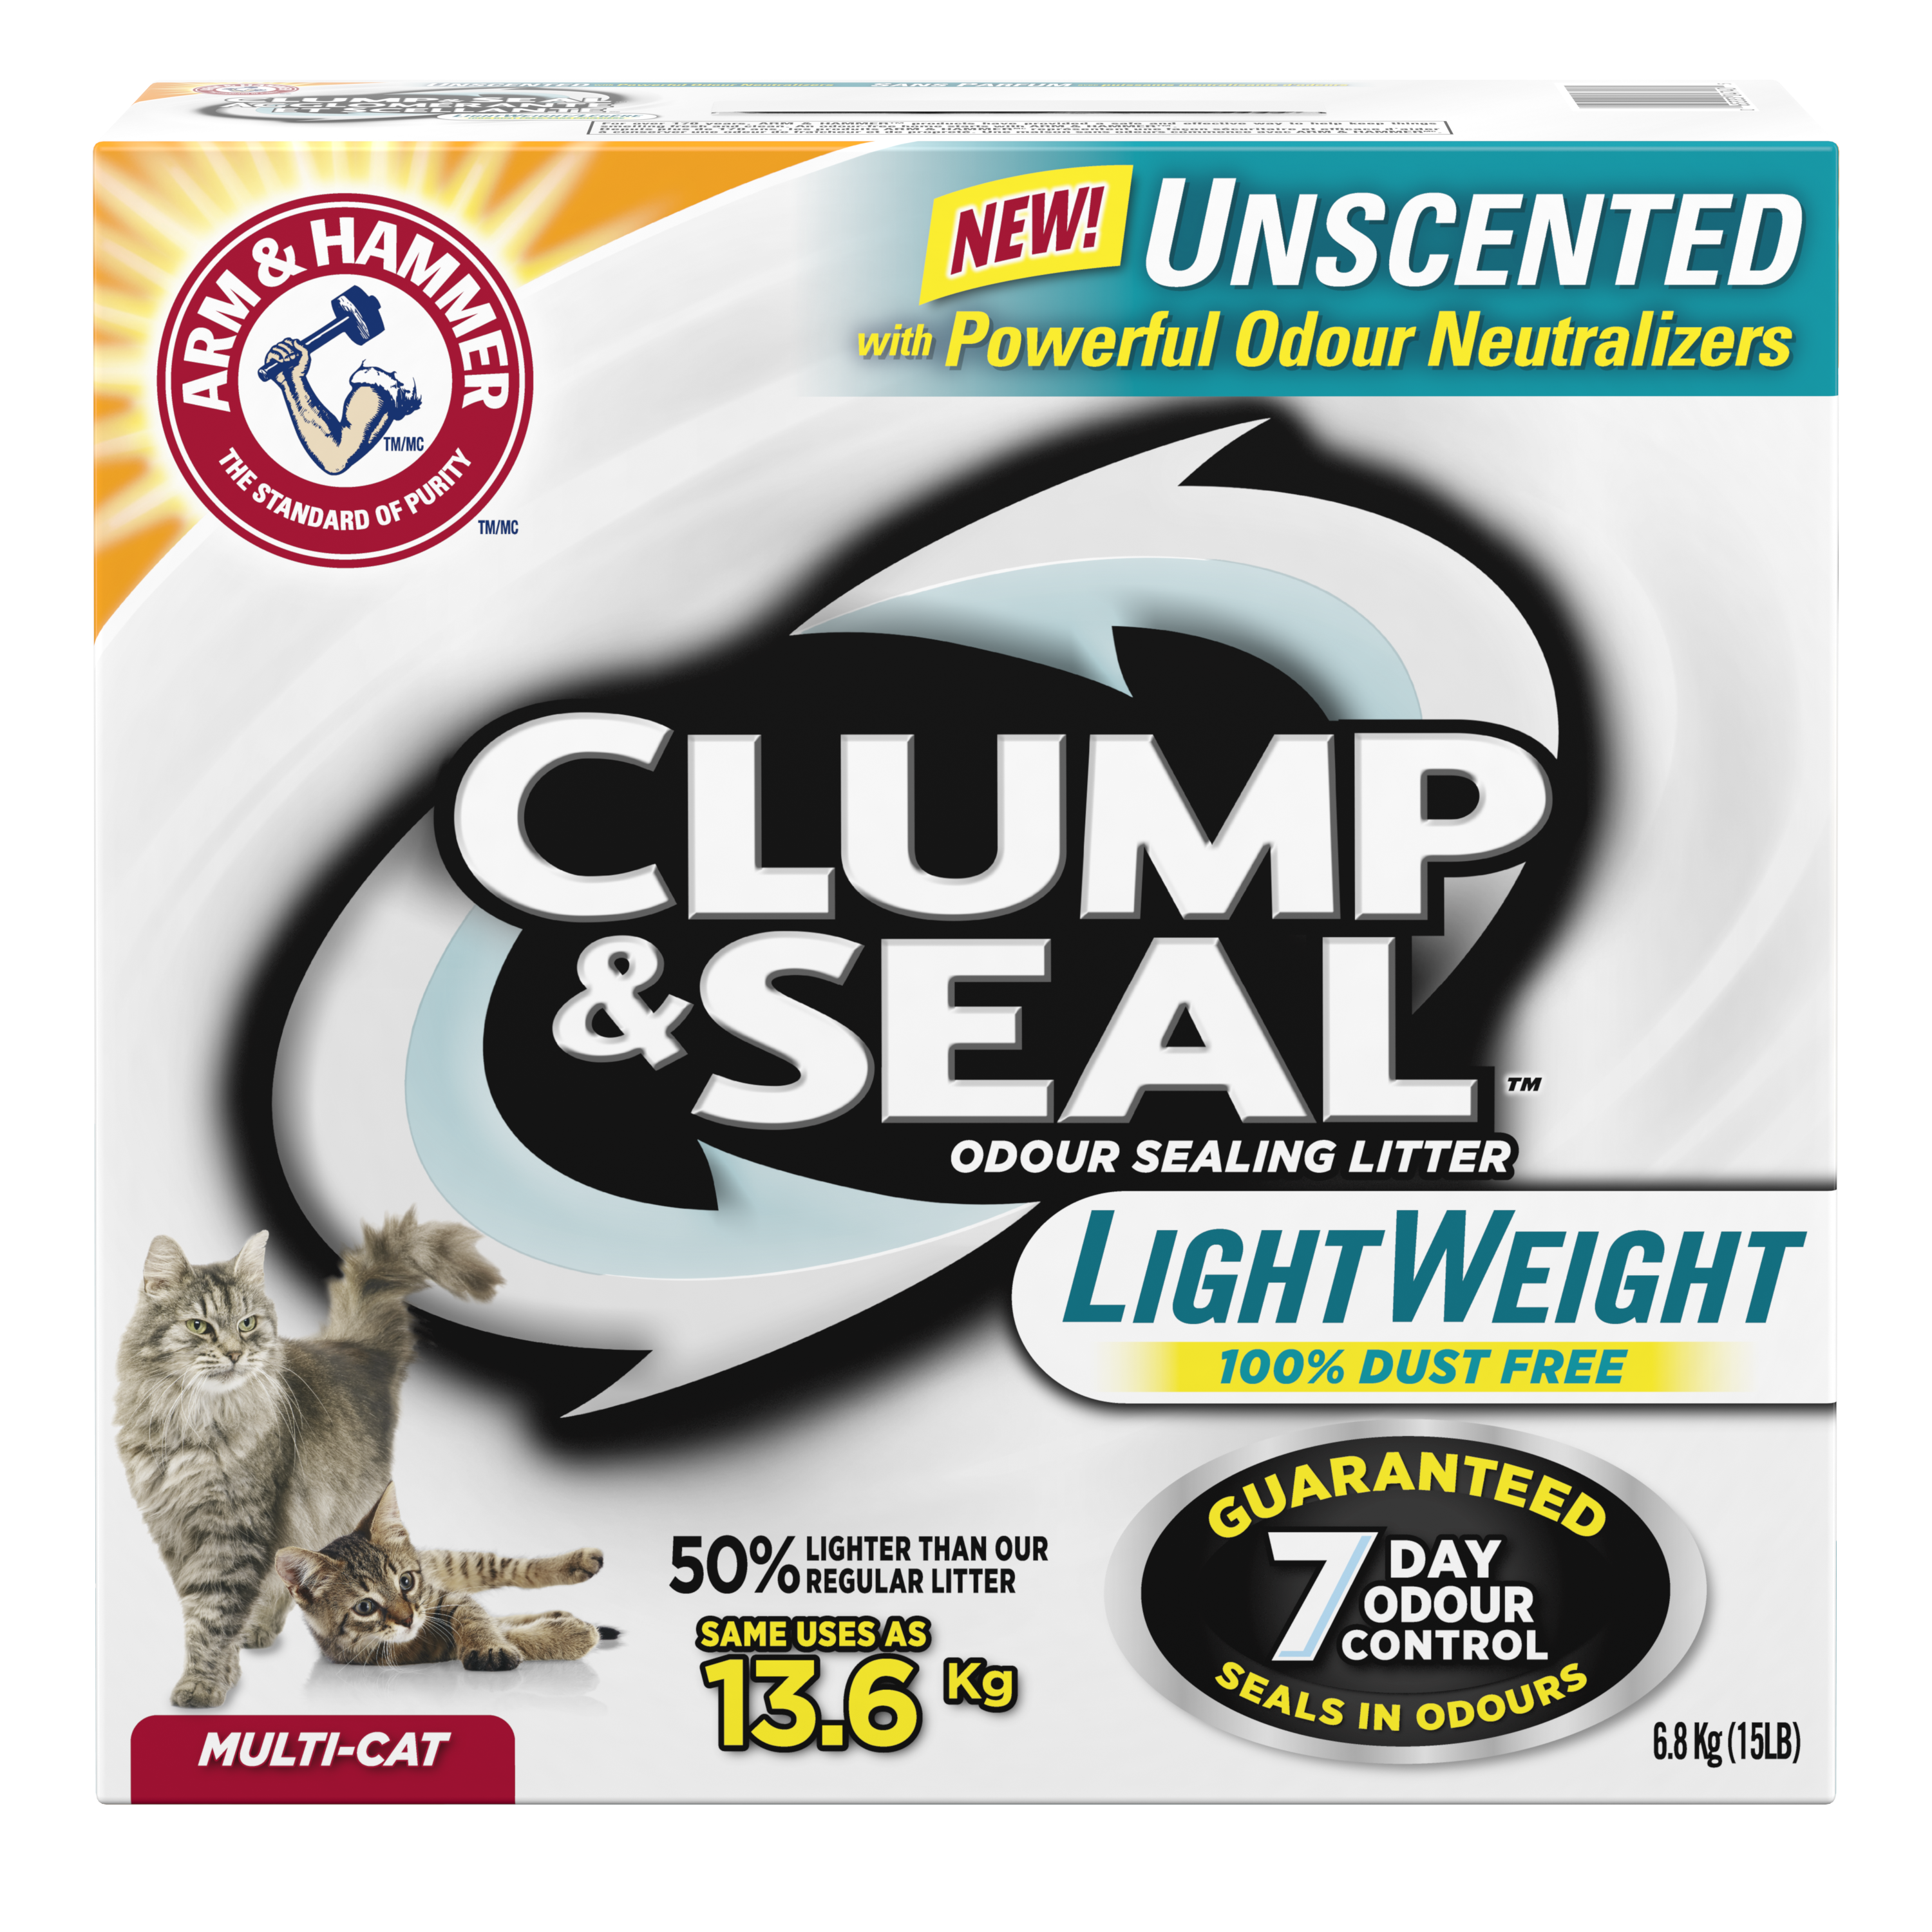 Clump & Seal™ Lightweight Odour Sealing Clumping Litter, Unscented